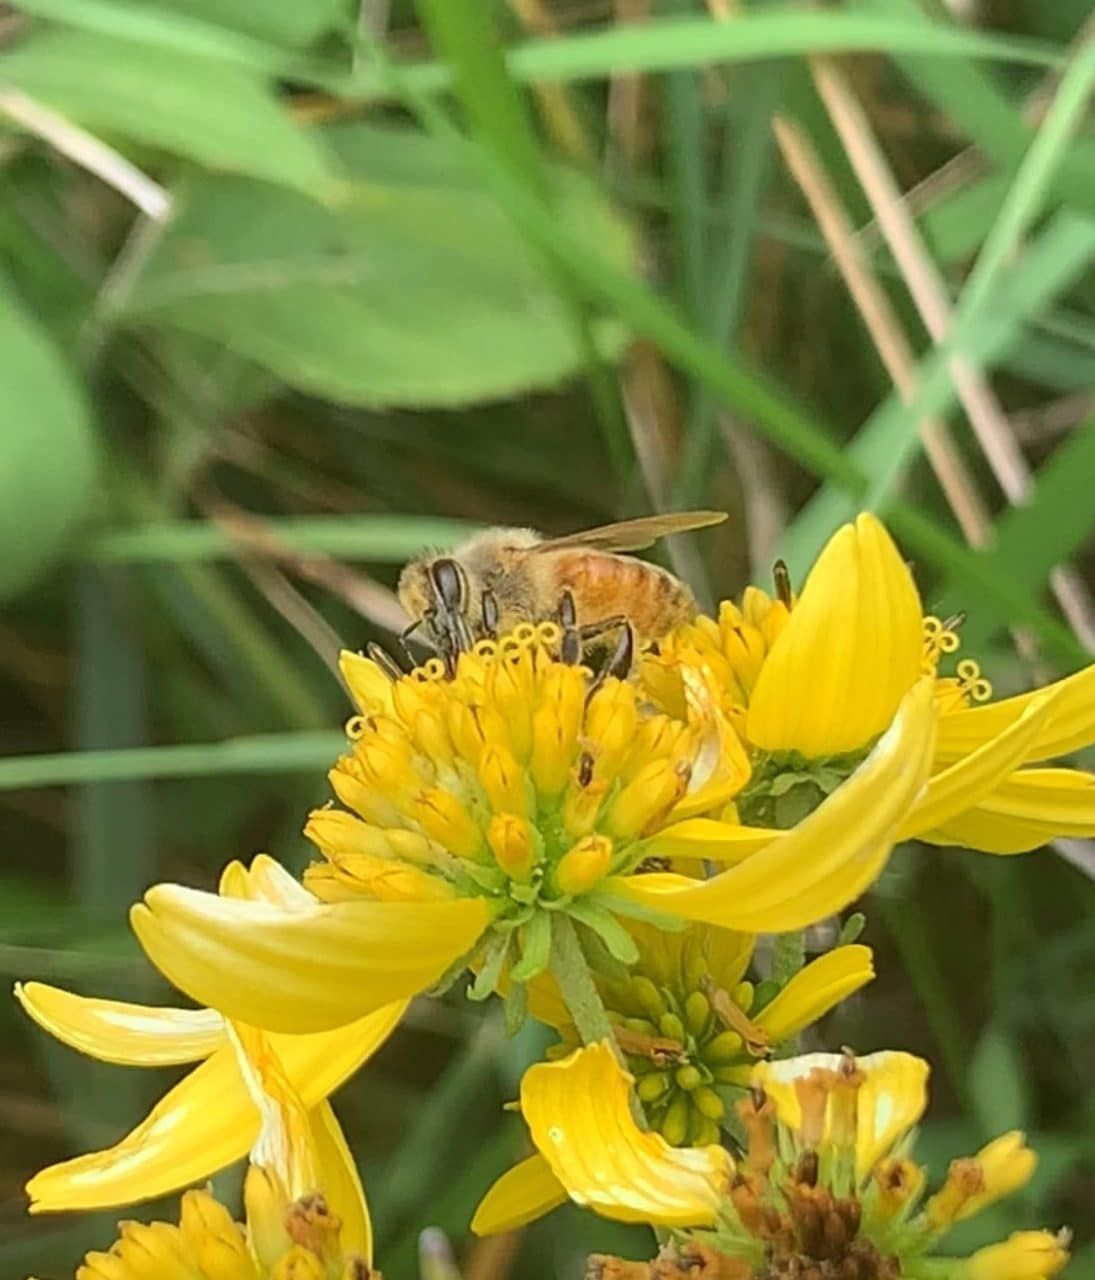 An image of a bee on a flower